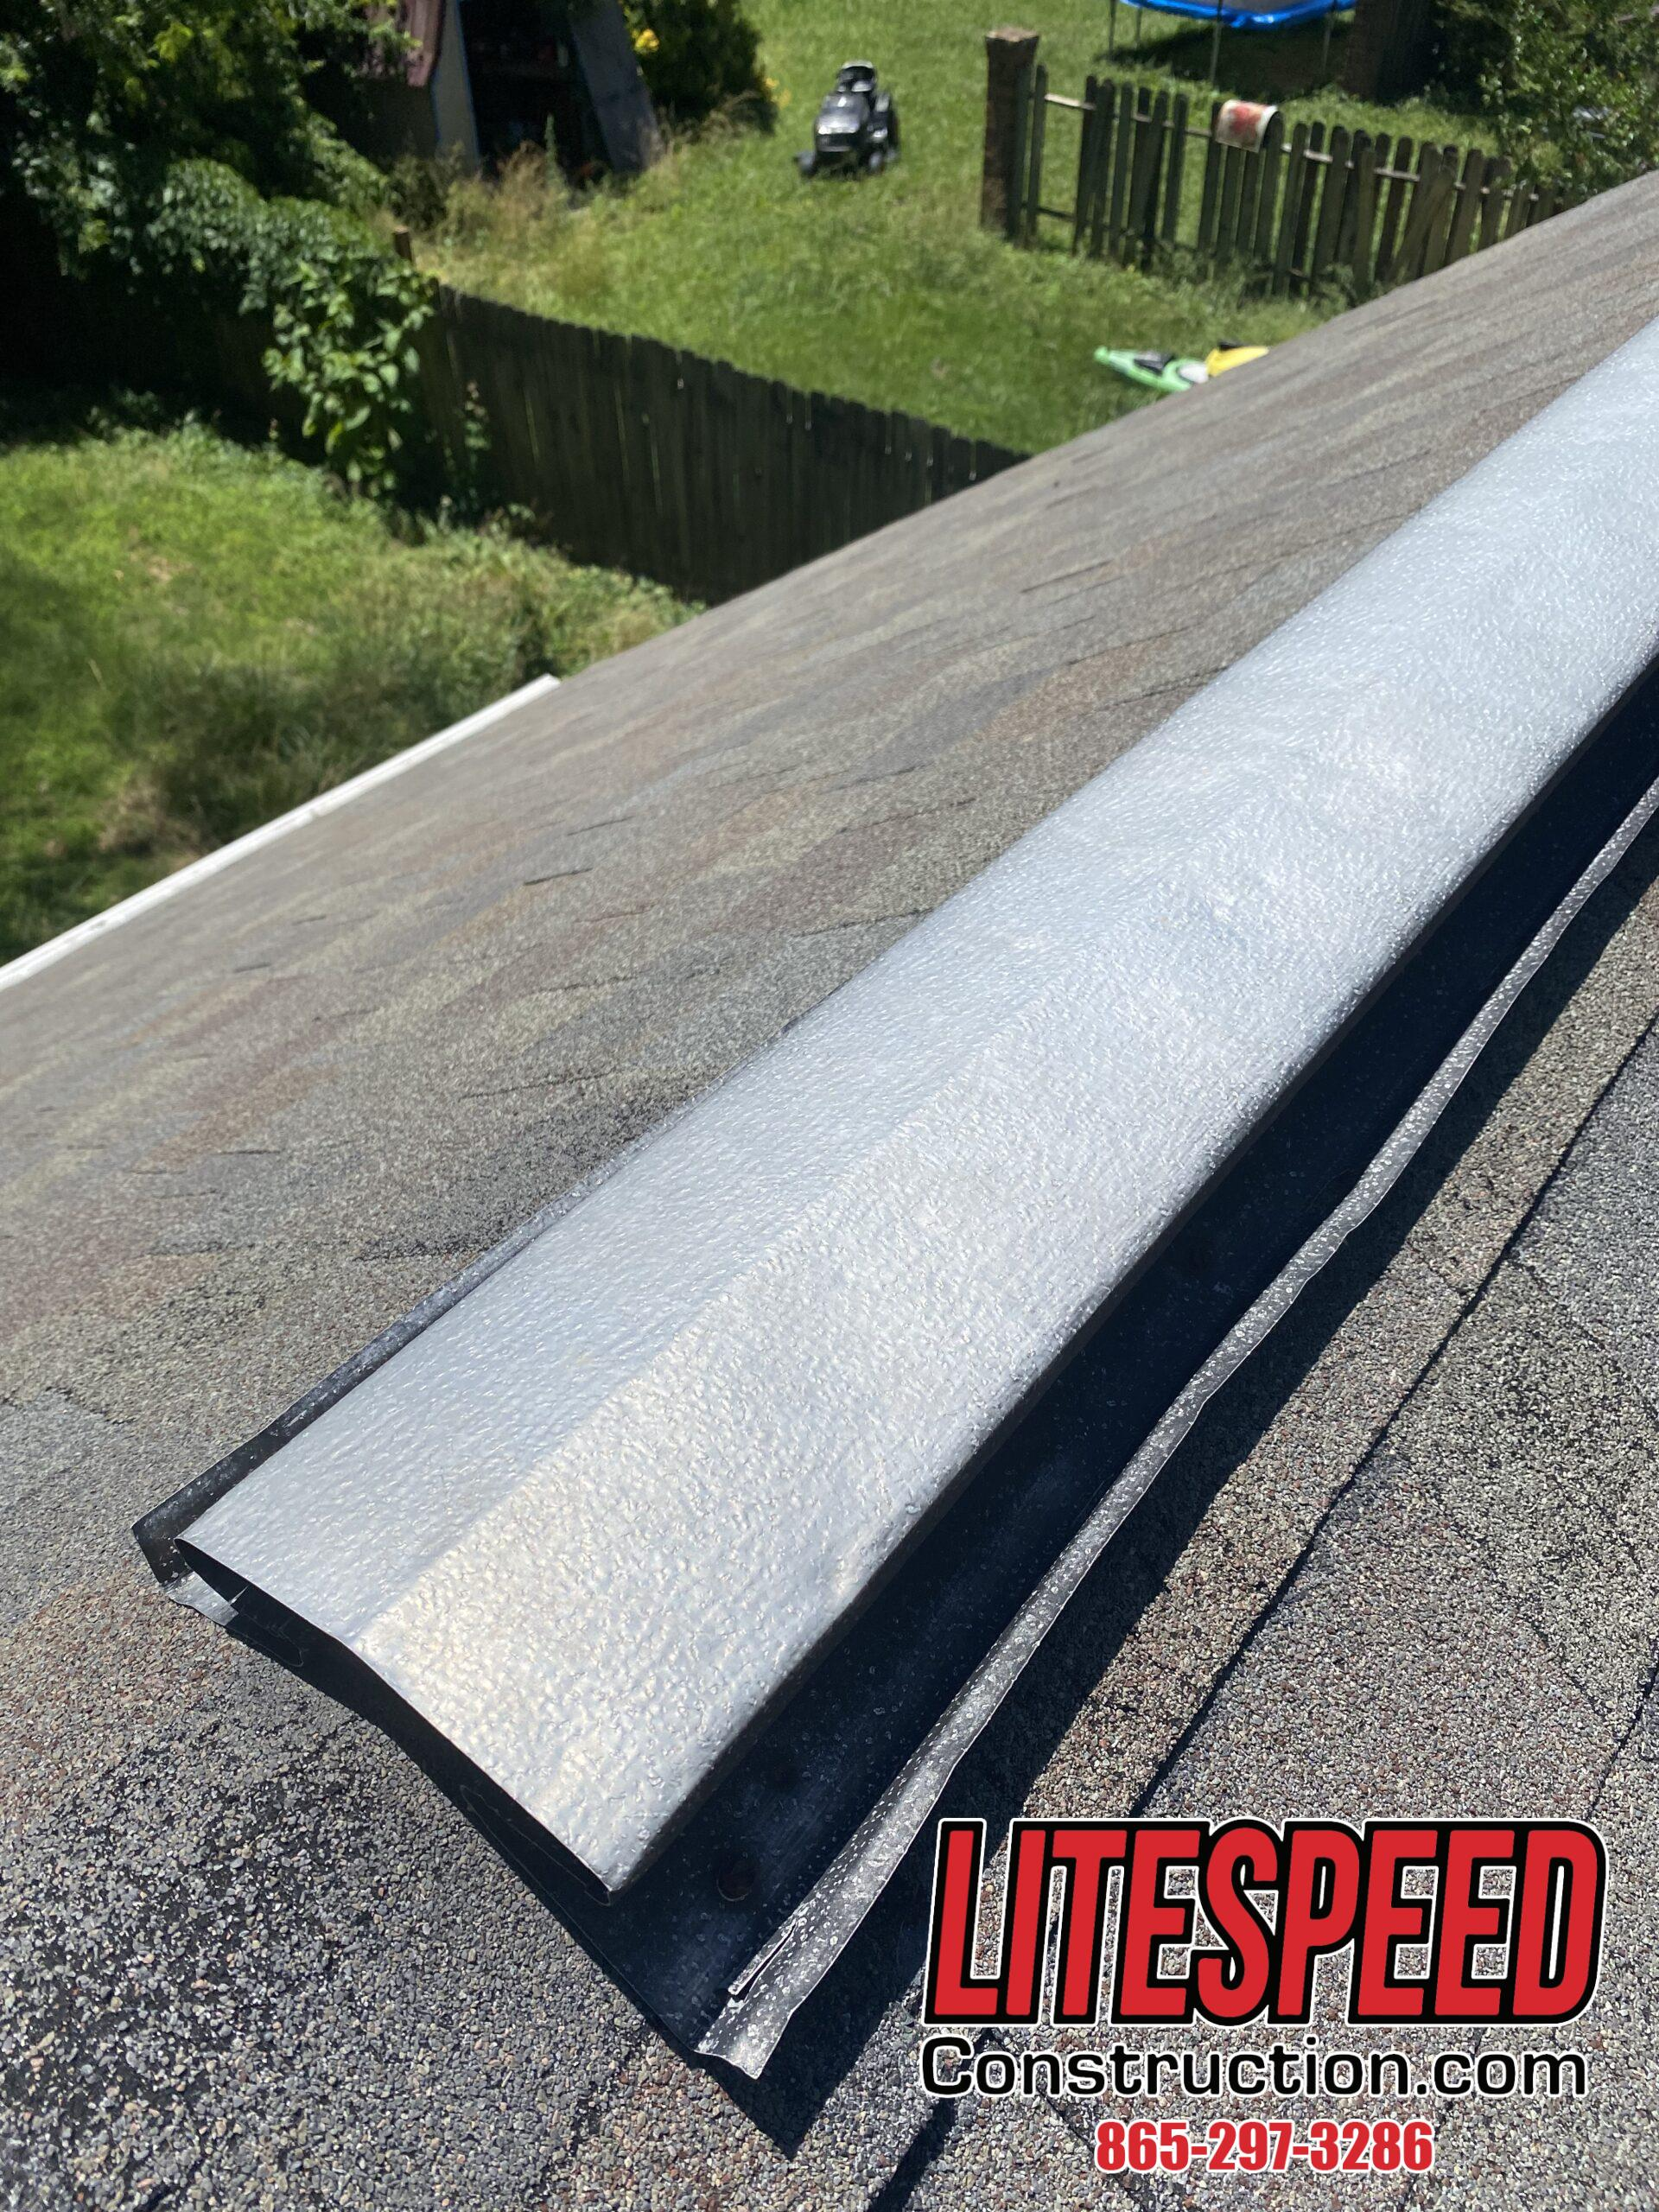 This is a picture of an old black metal ridge vent on a steep roof